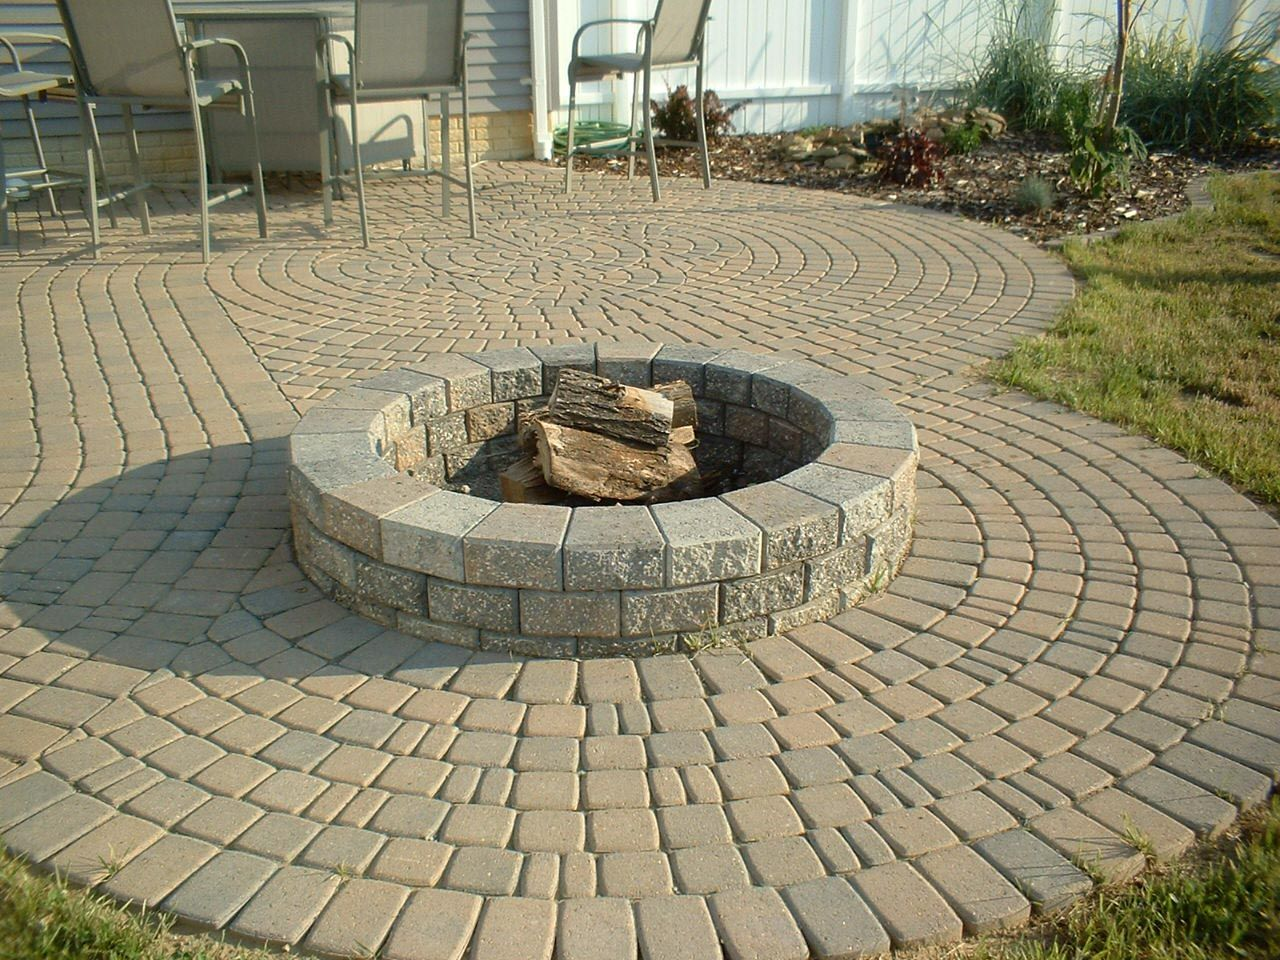 How Many Pavers For Fire Pit Fire Pit Patio Paver Fire Pit Fire Pit Essentials